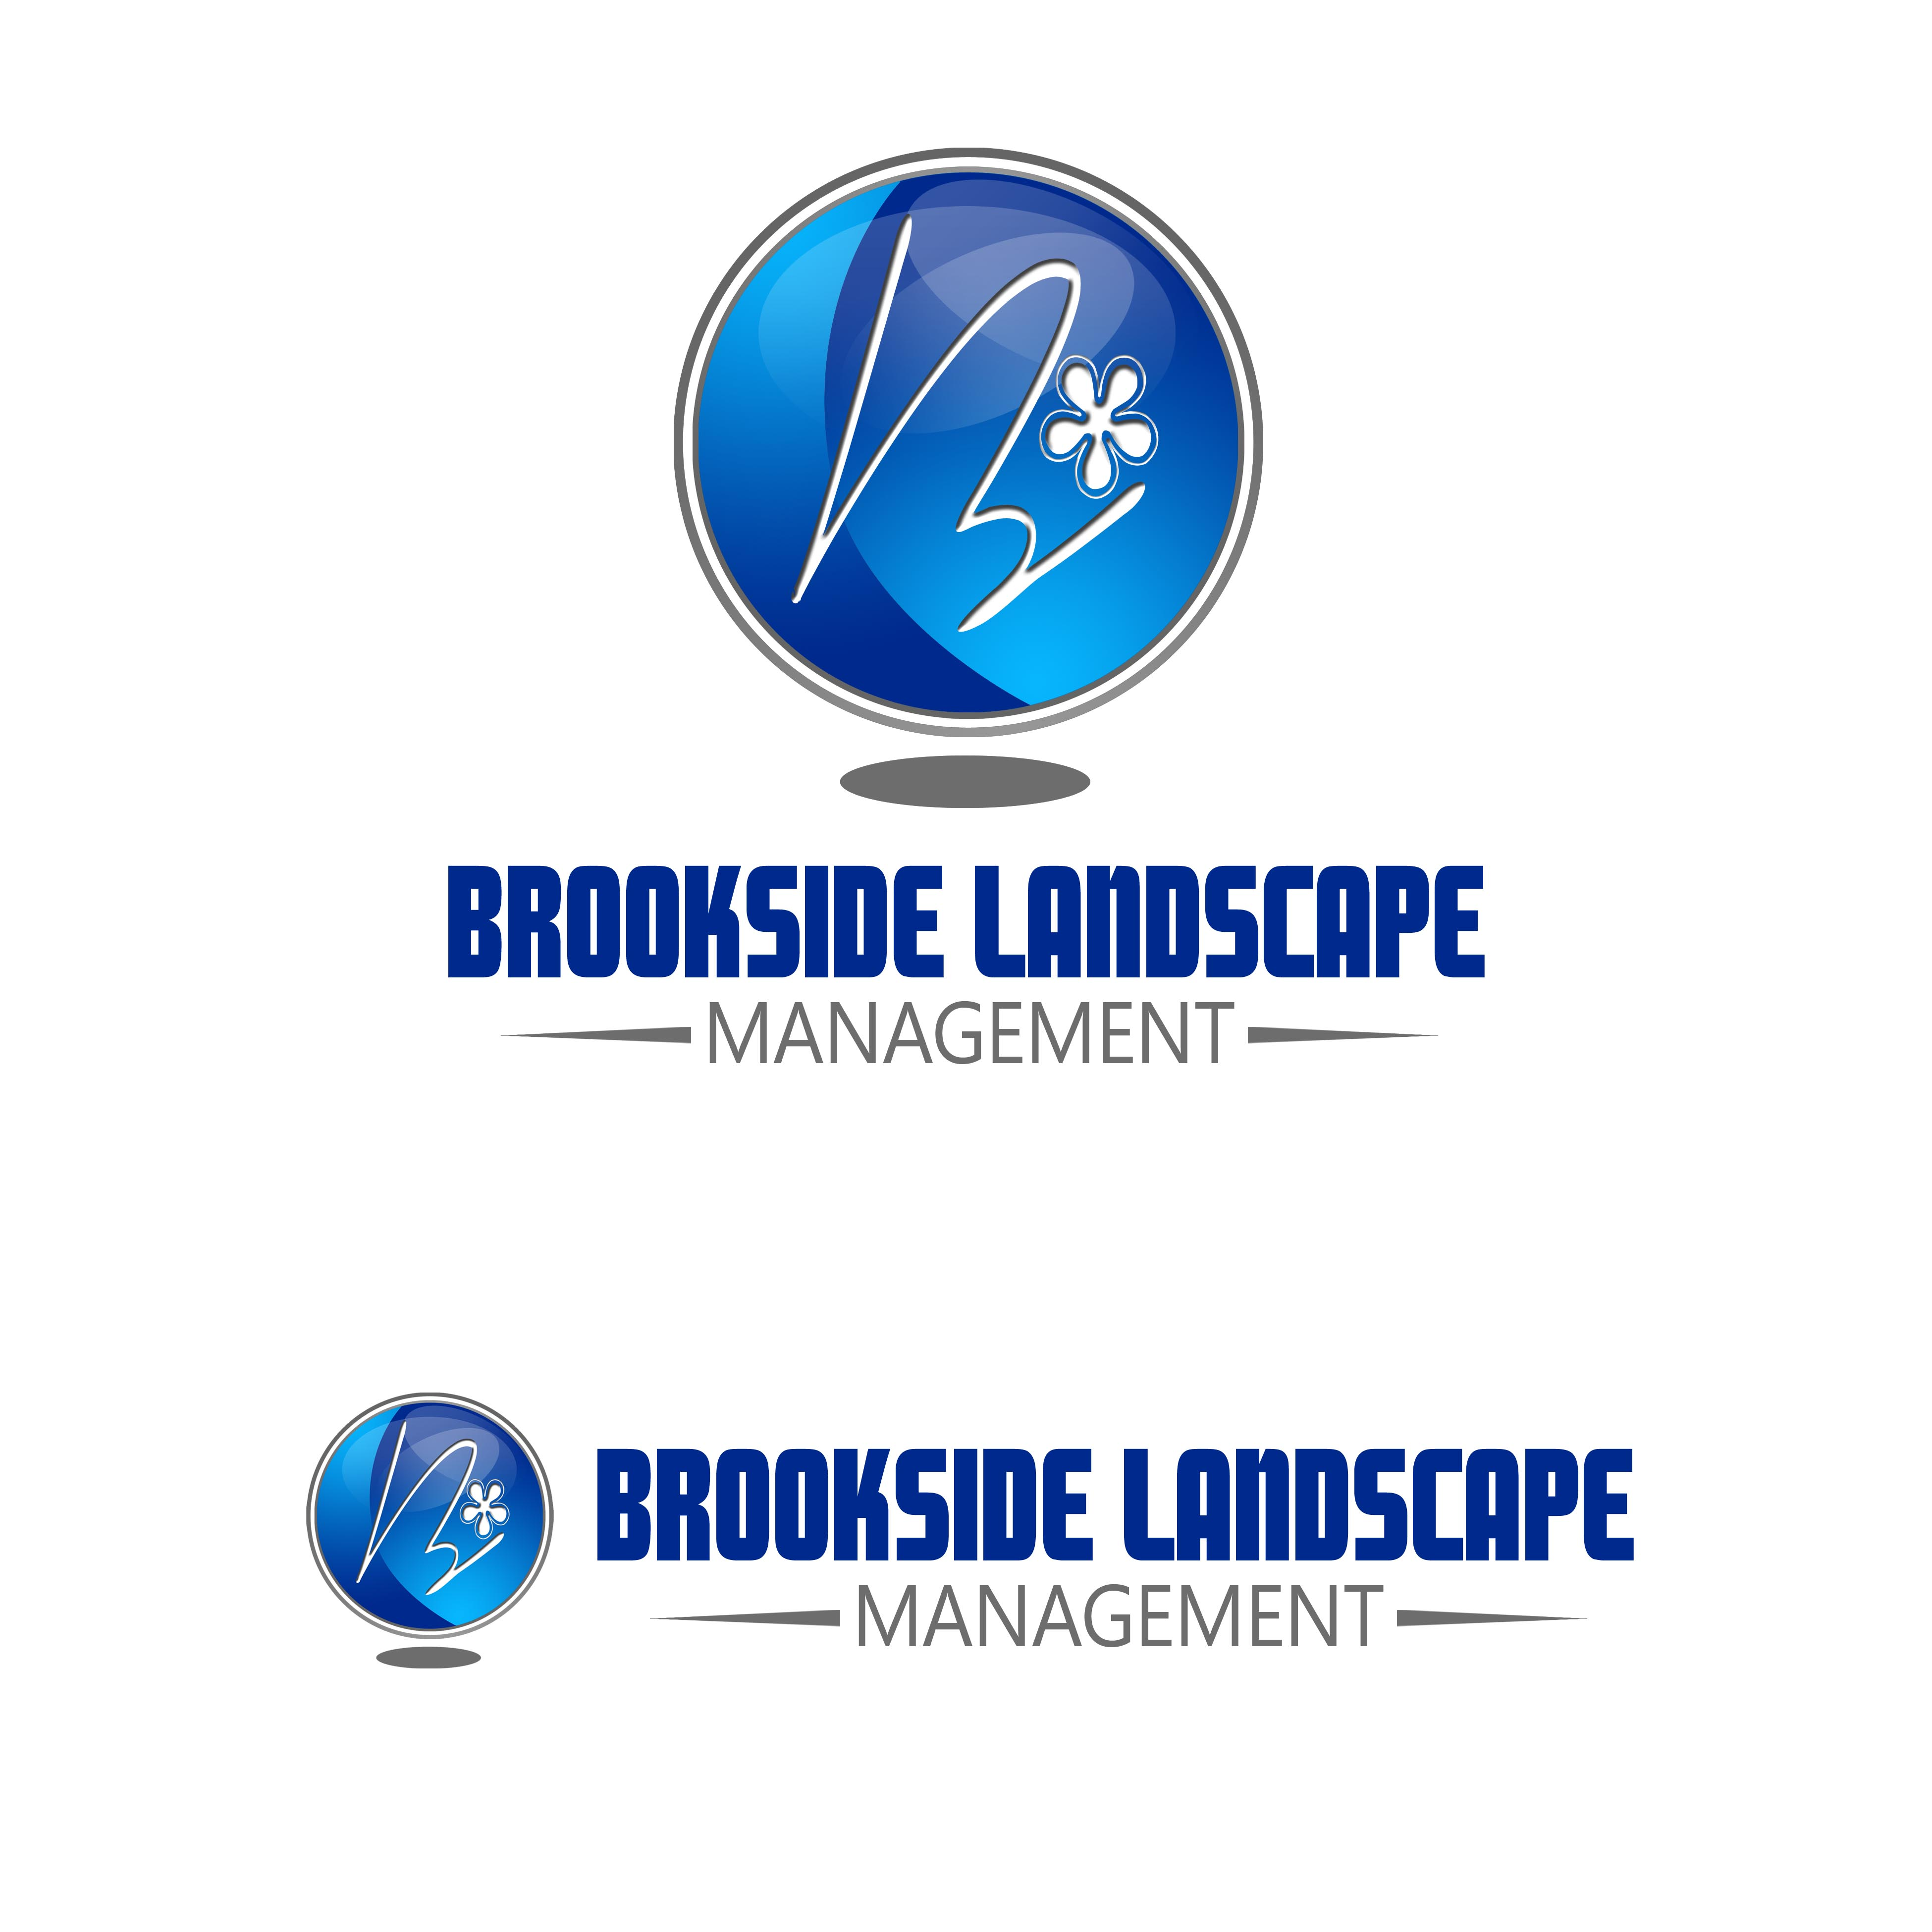 Logo Design by Cesar III Sotto - Entry No. 159 in the Logo Design Contest New Logo Design for Brookside Landscape Management.